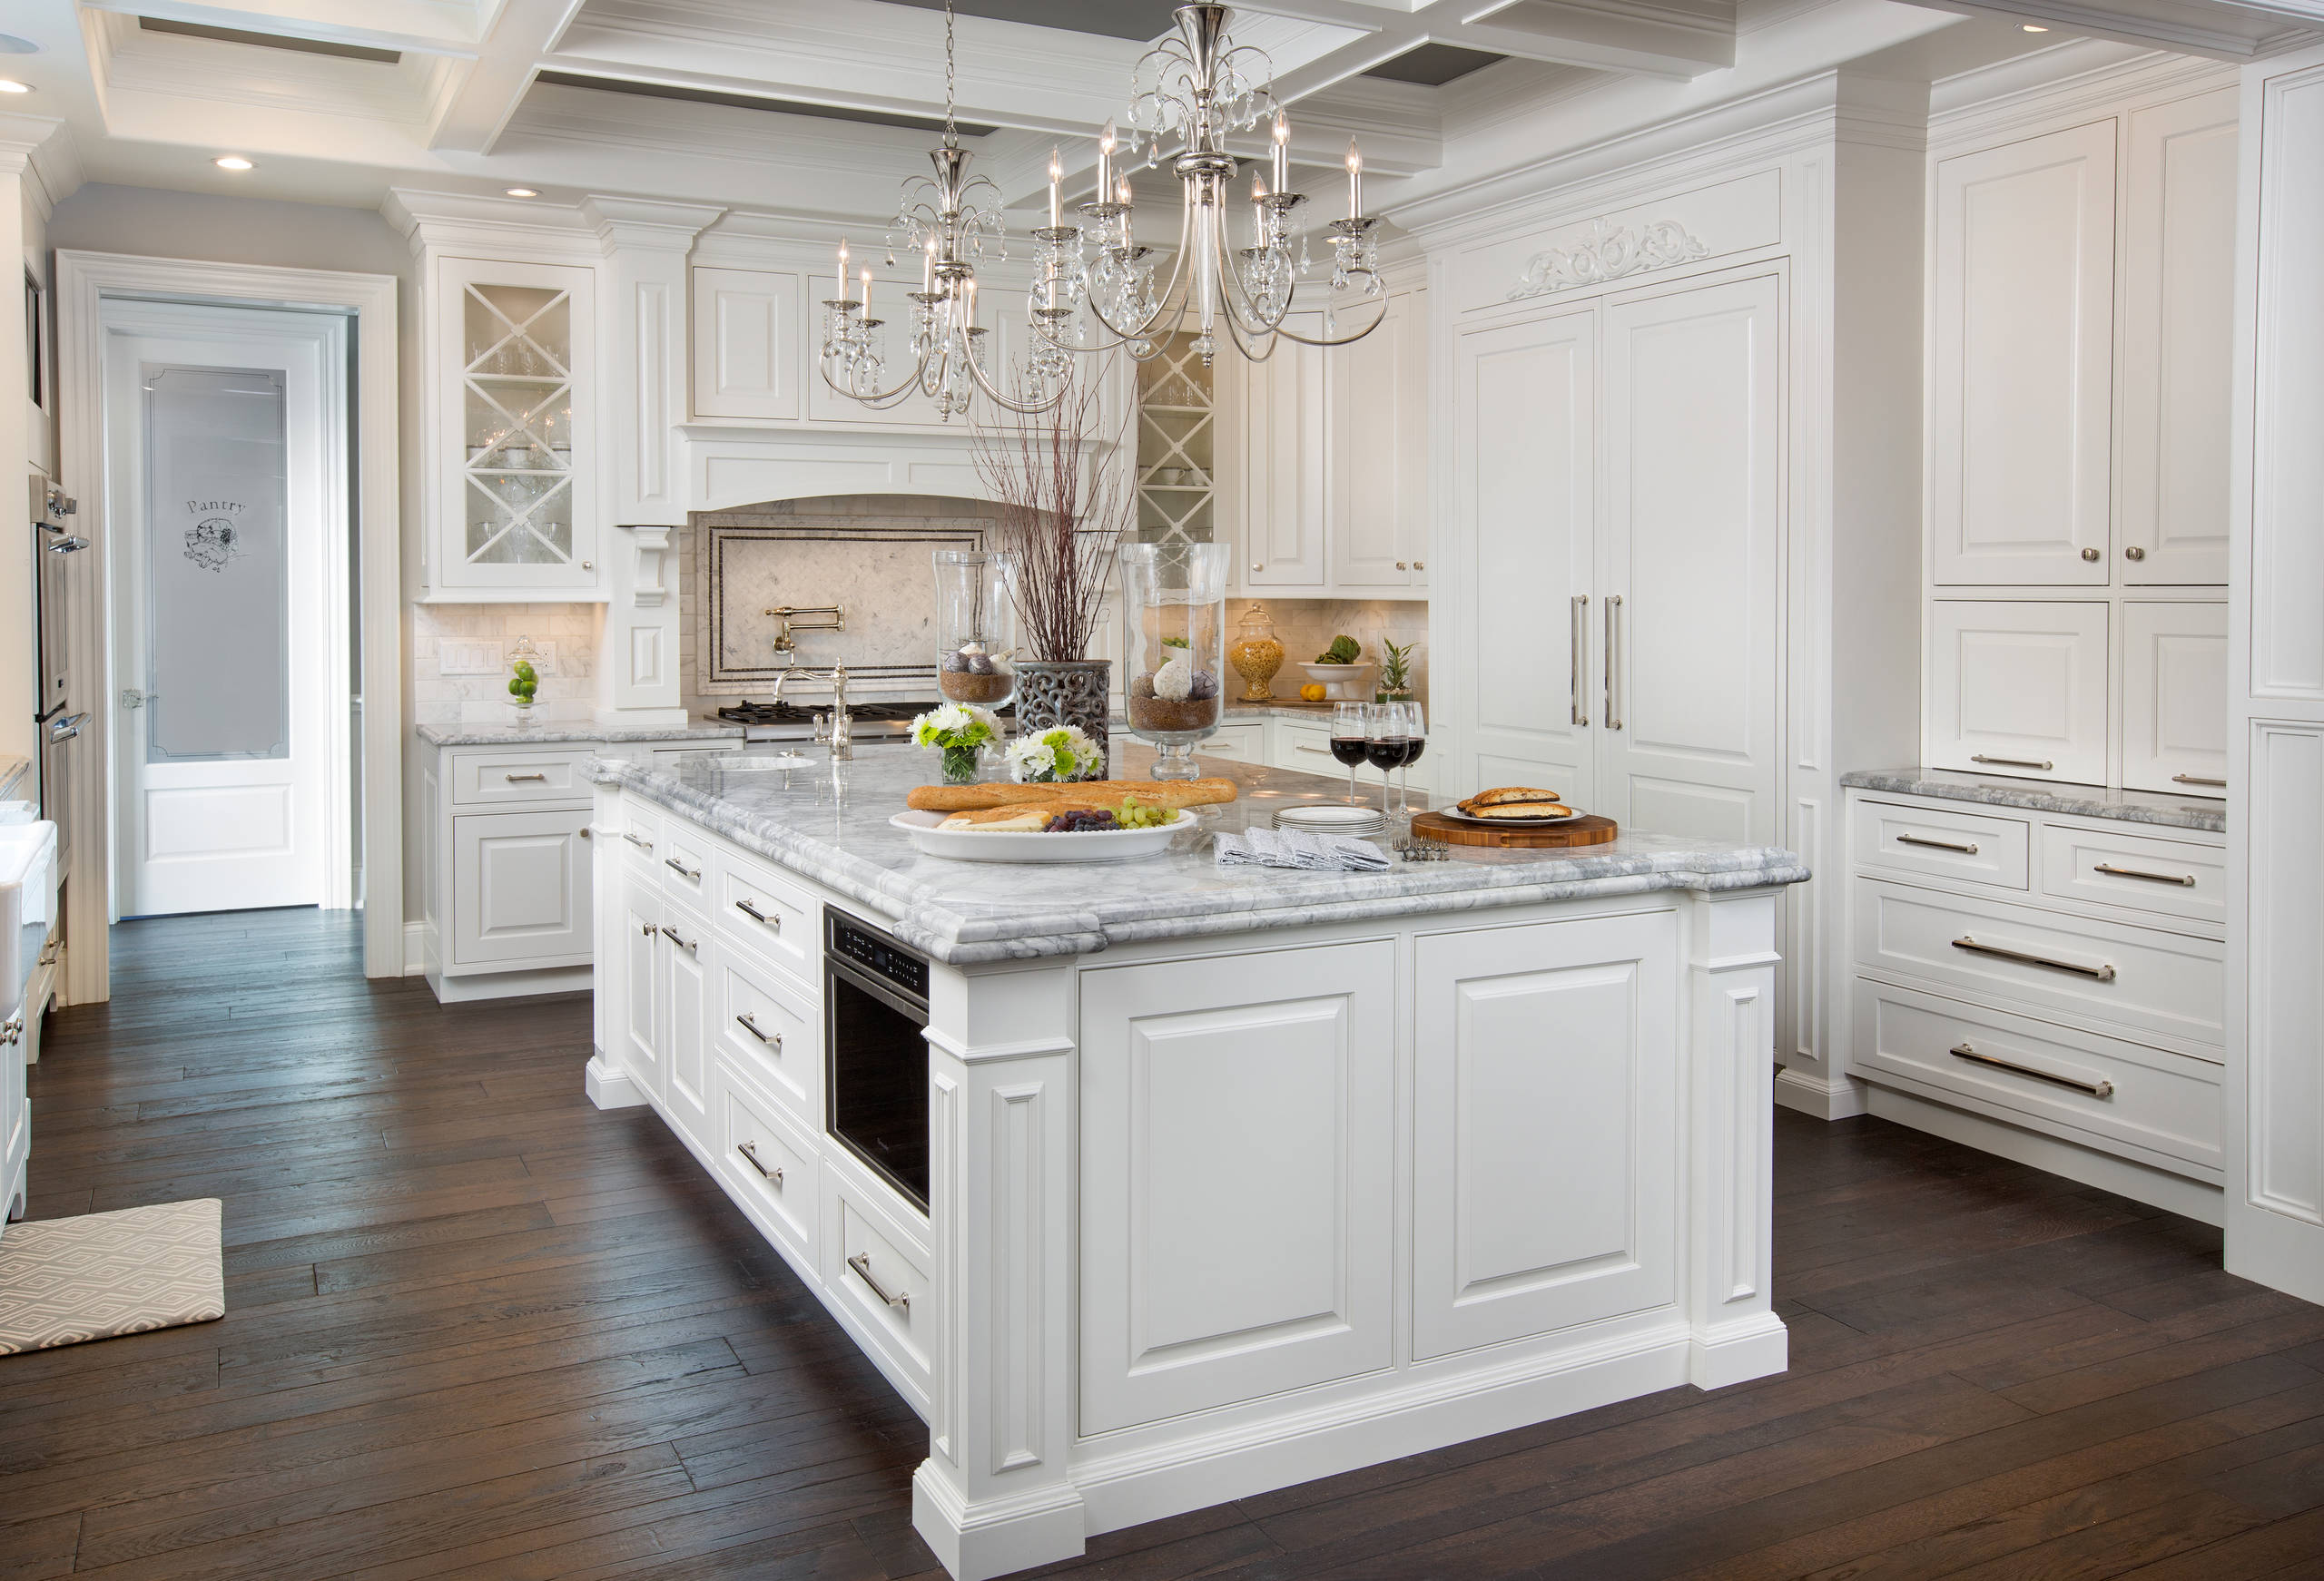 7 steps to decorating your dream kitchen make sure to for Dream kitchens